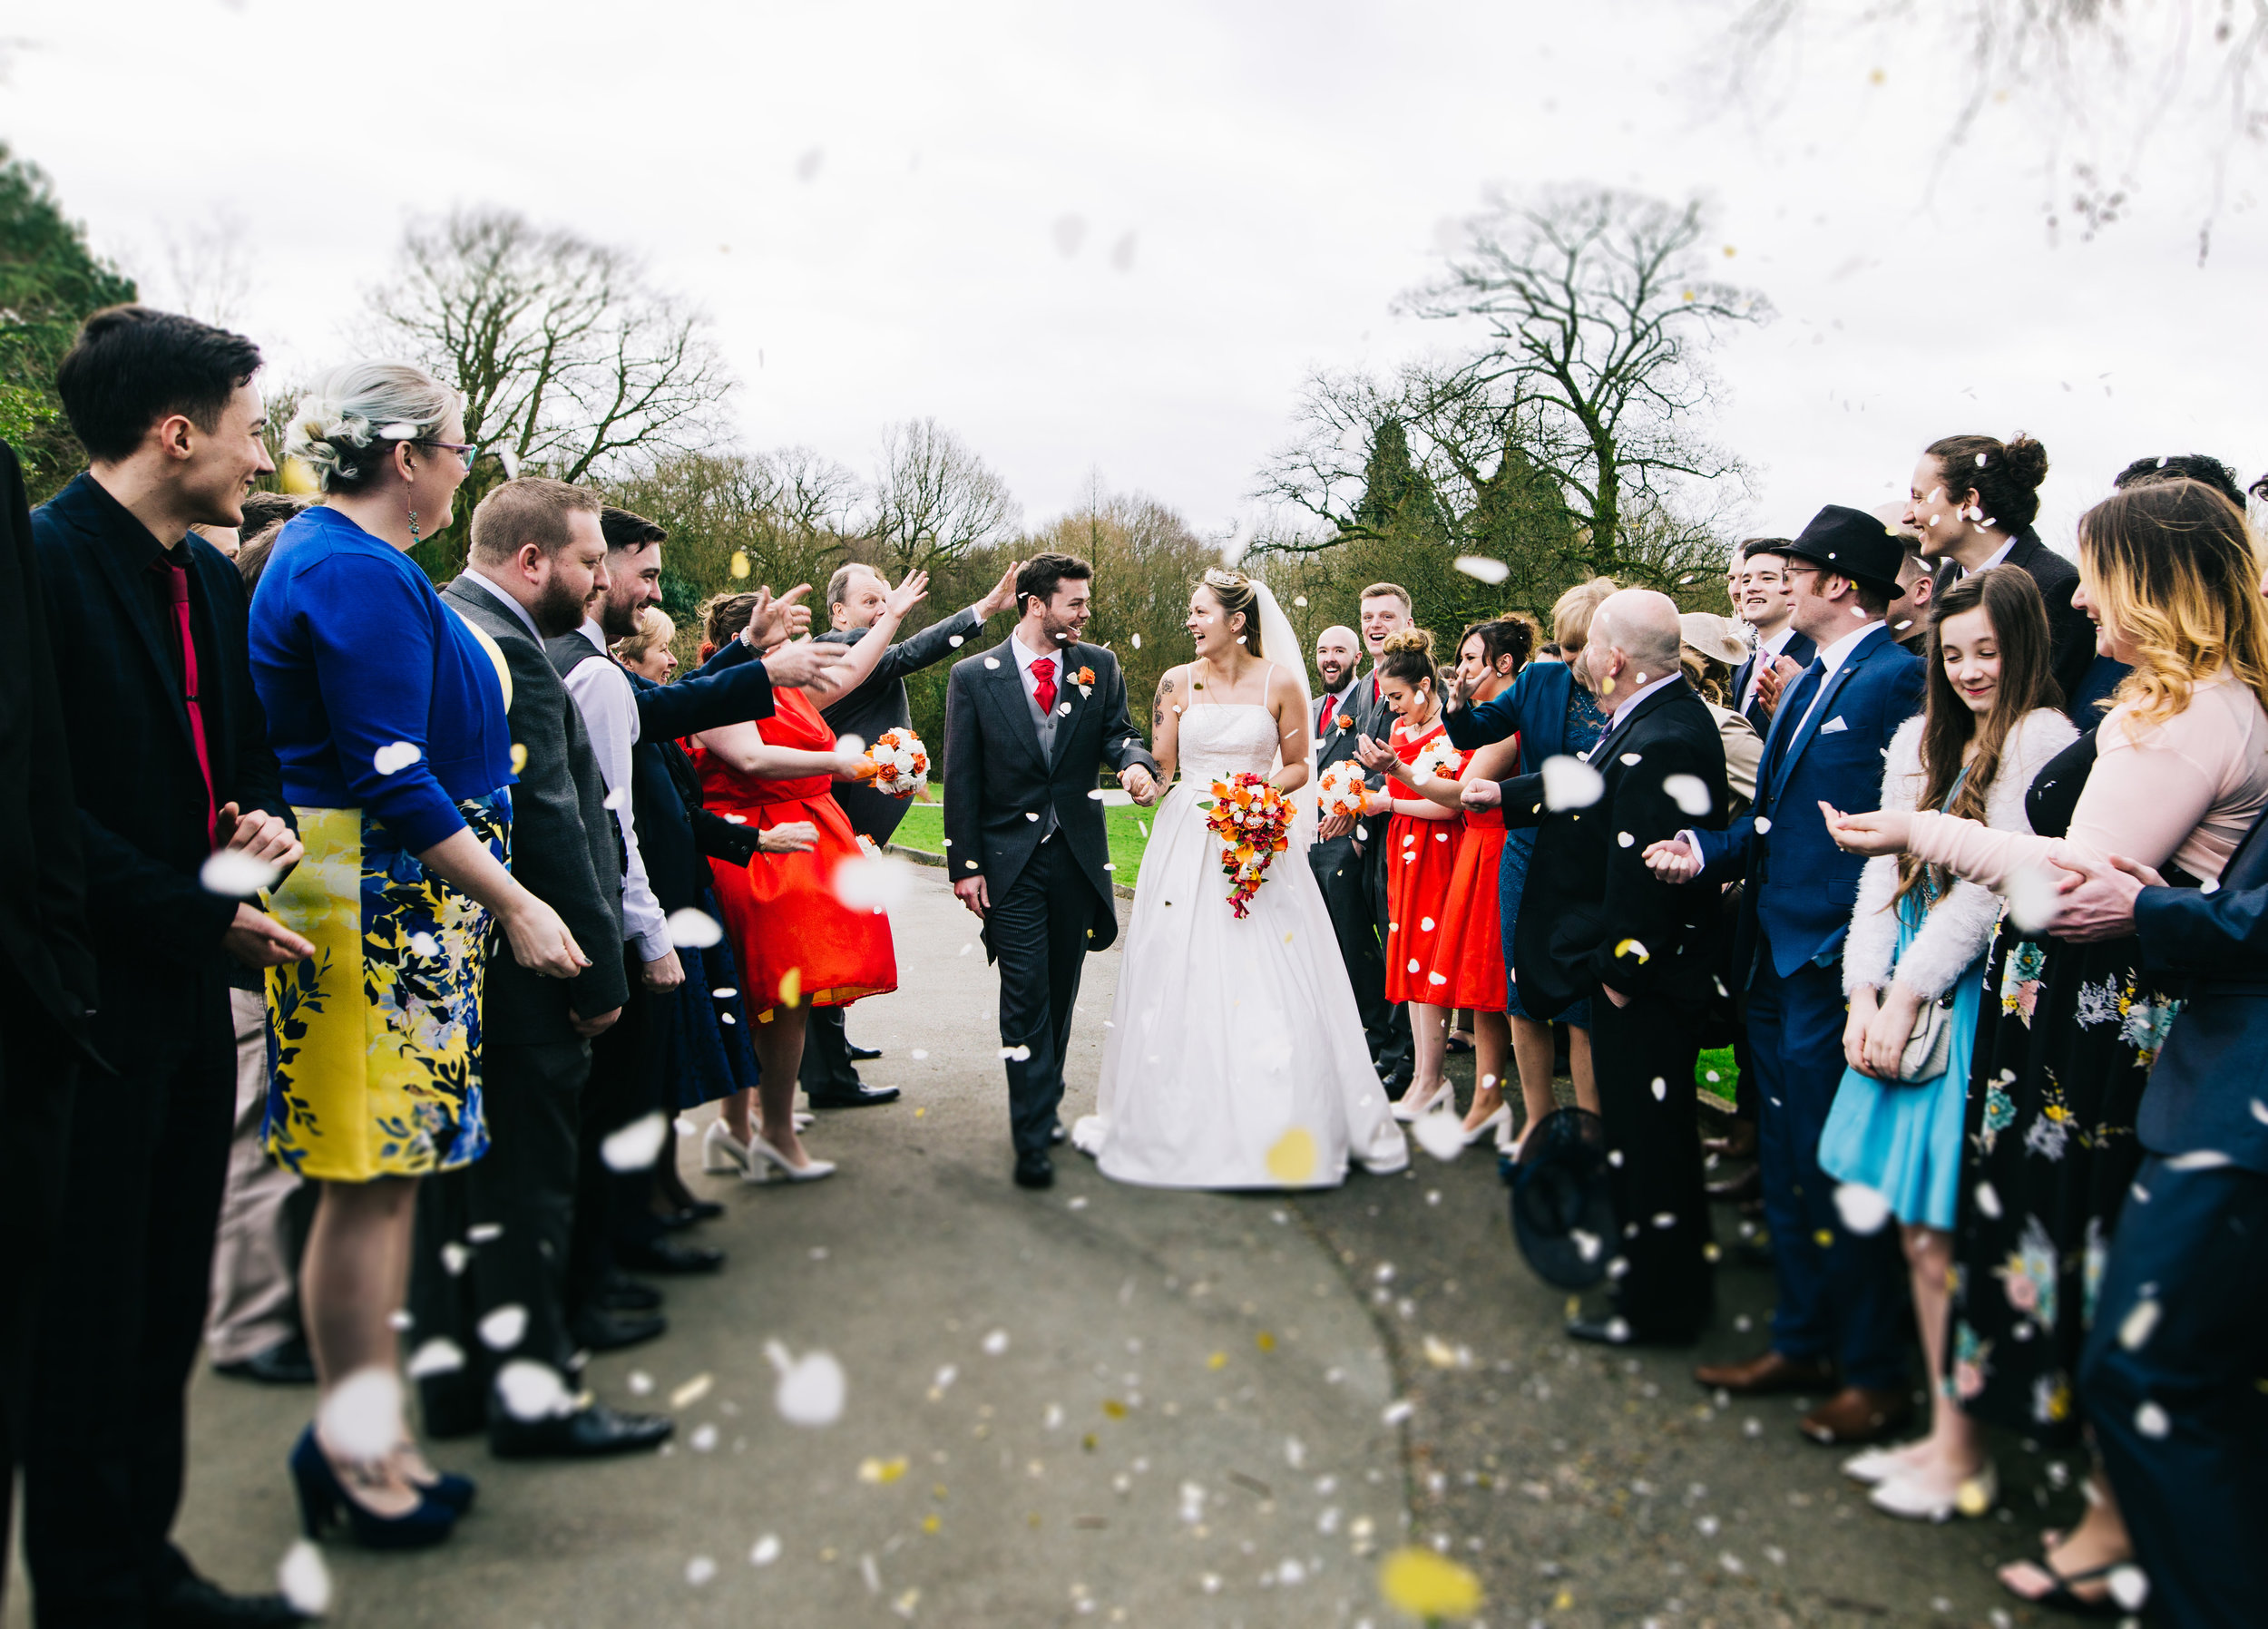 Rivington Barn wedding pictures - confetti